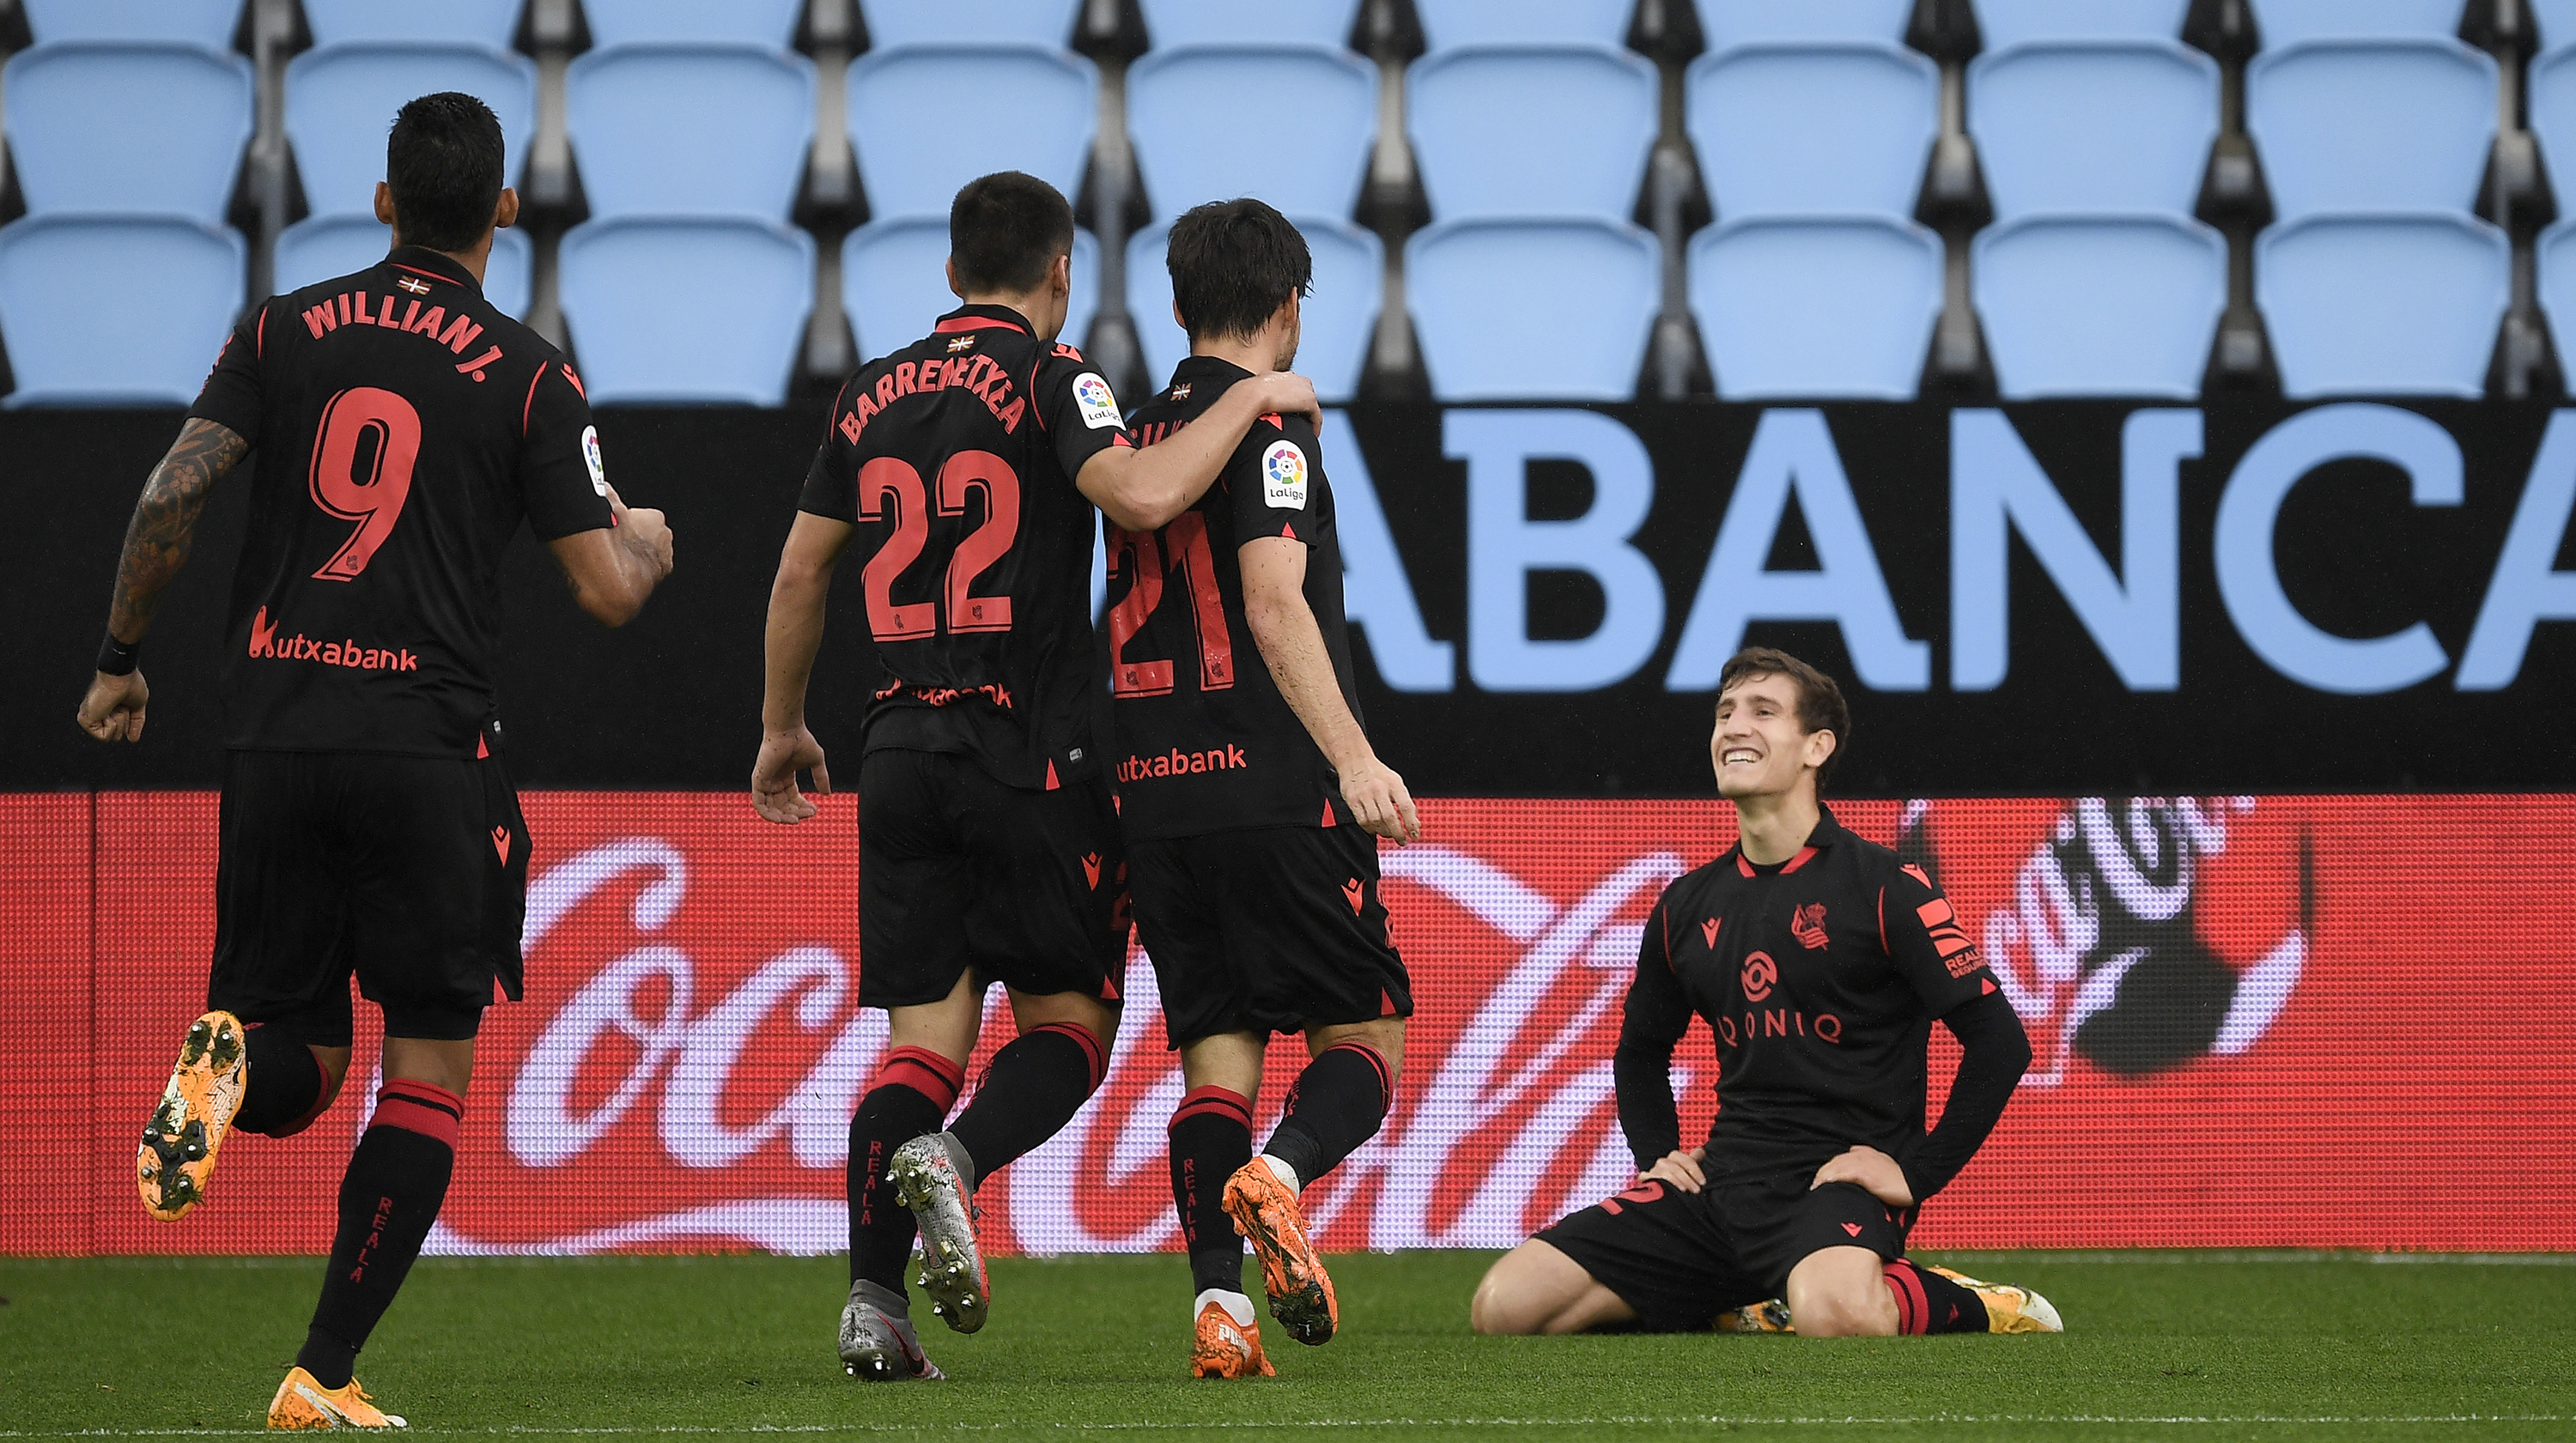 David Silva of Real Sociedad celebrates with teammates after scoring his sides first goal during the La Liga Santader match between RC Celta and Real Sociedad